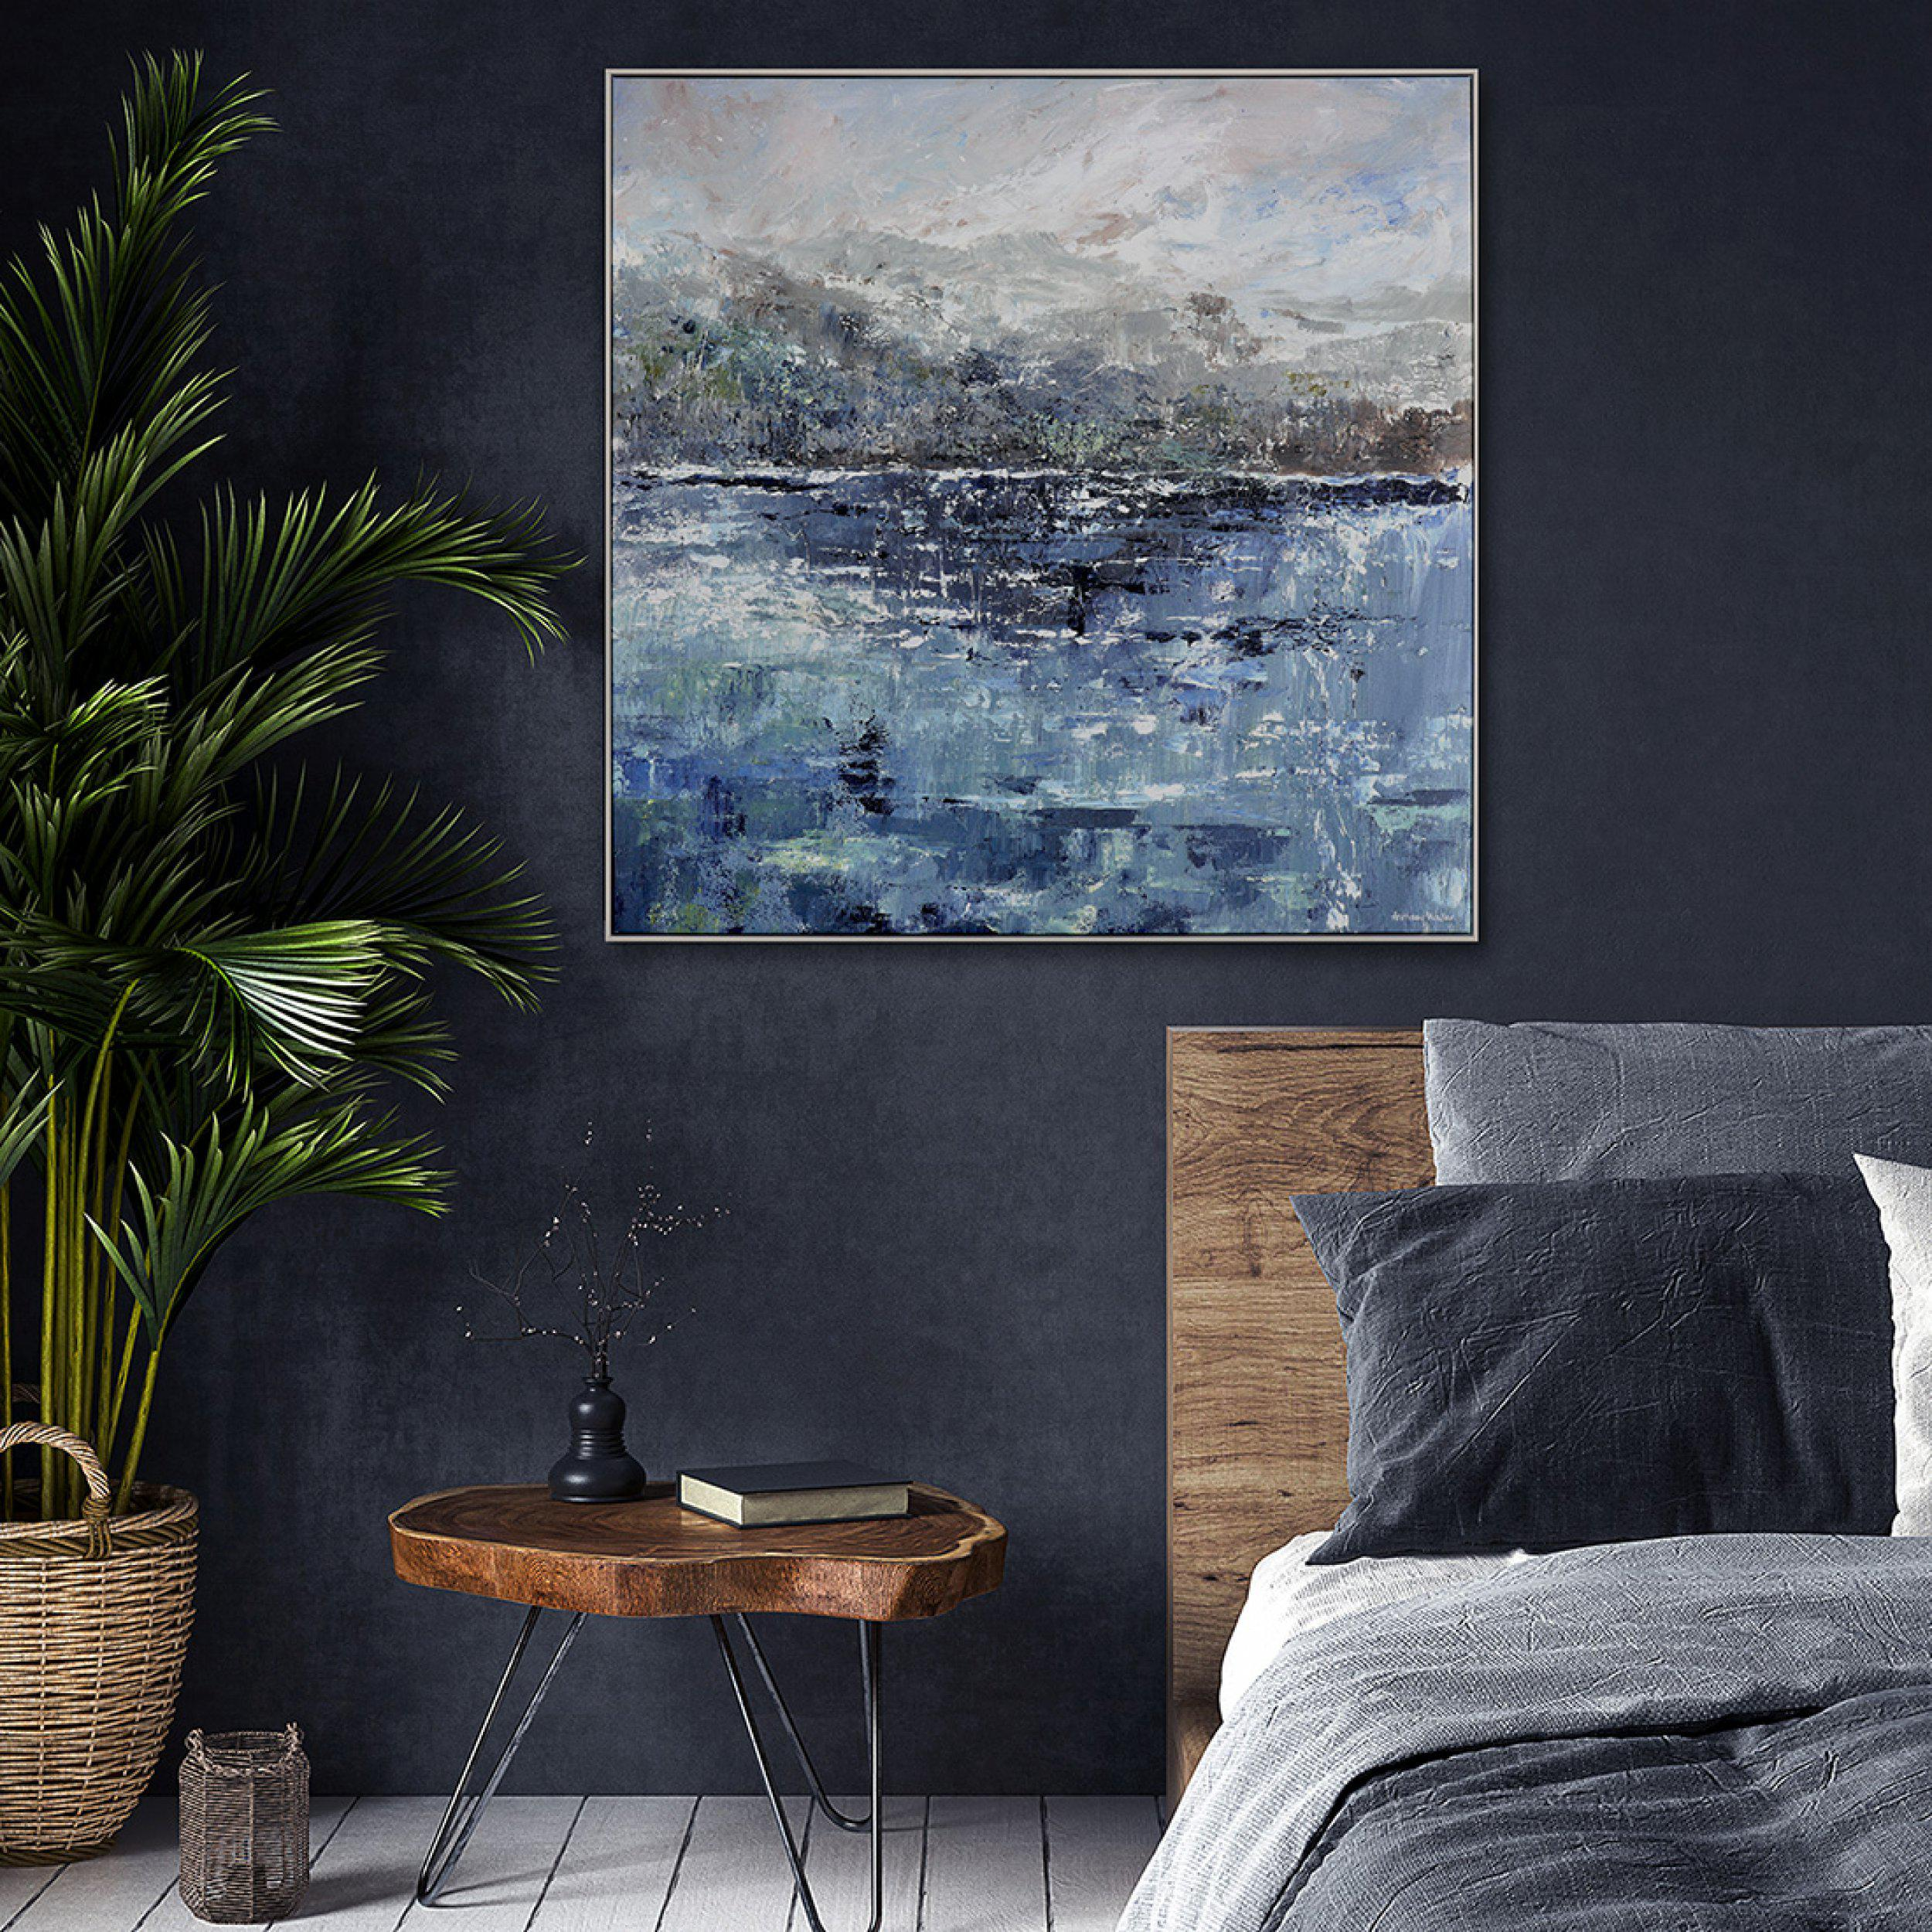 Art Gallery - Ripple Effect Painting by Artist Anthony Waller - Framed Print For Sale - Room Display